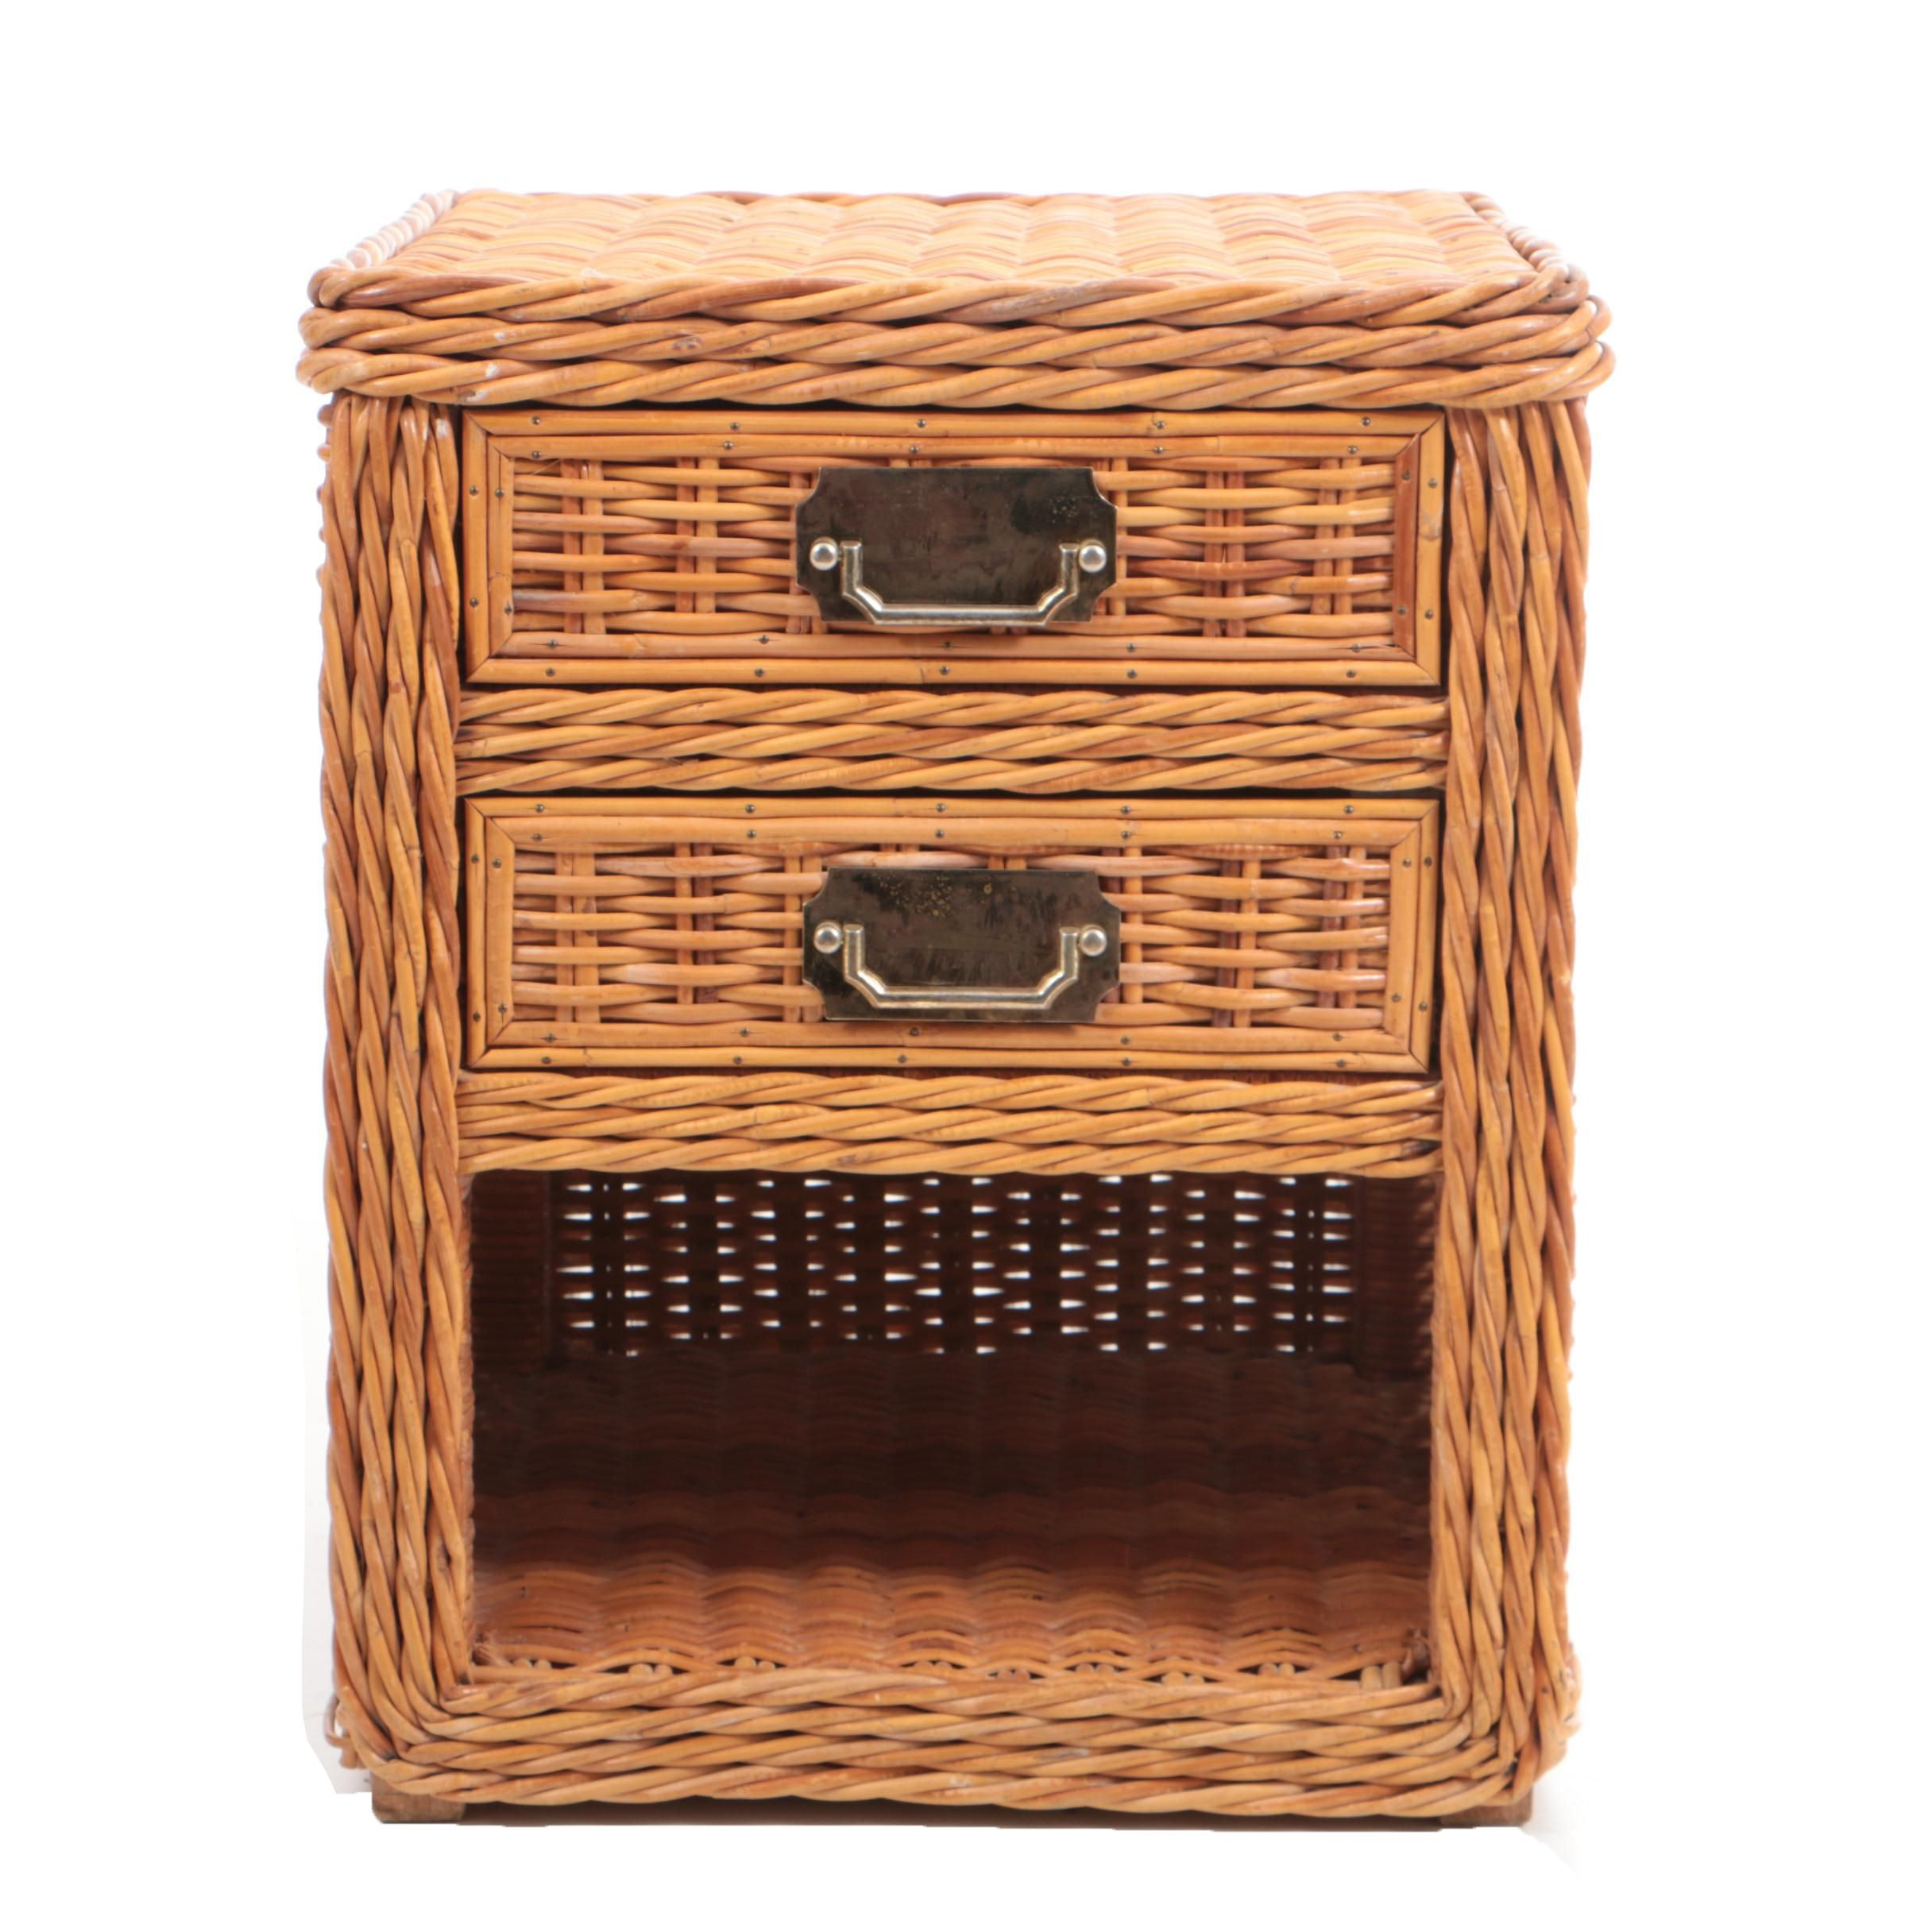 Rattan Wicker Accent Table with Drawers